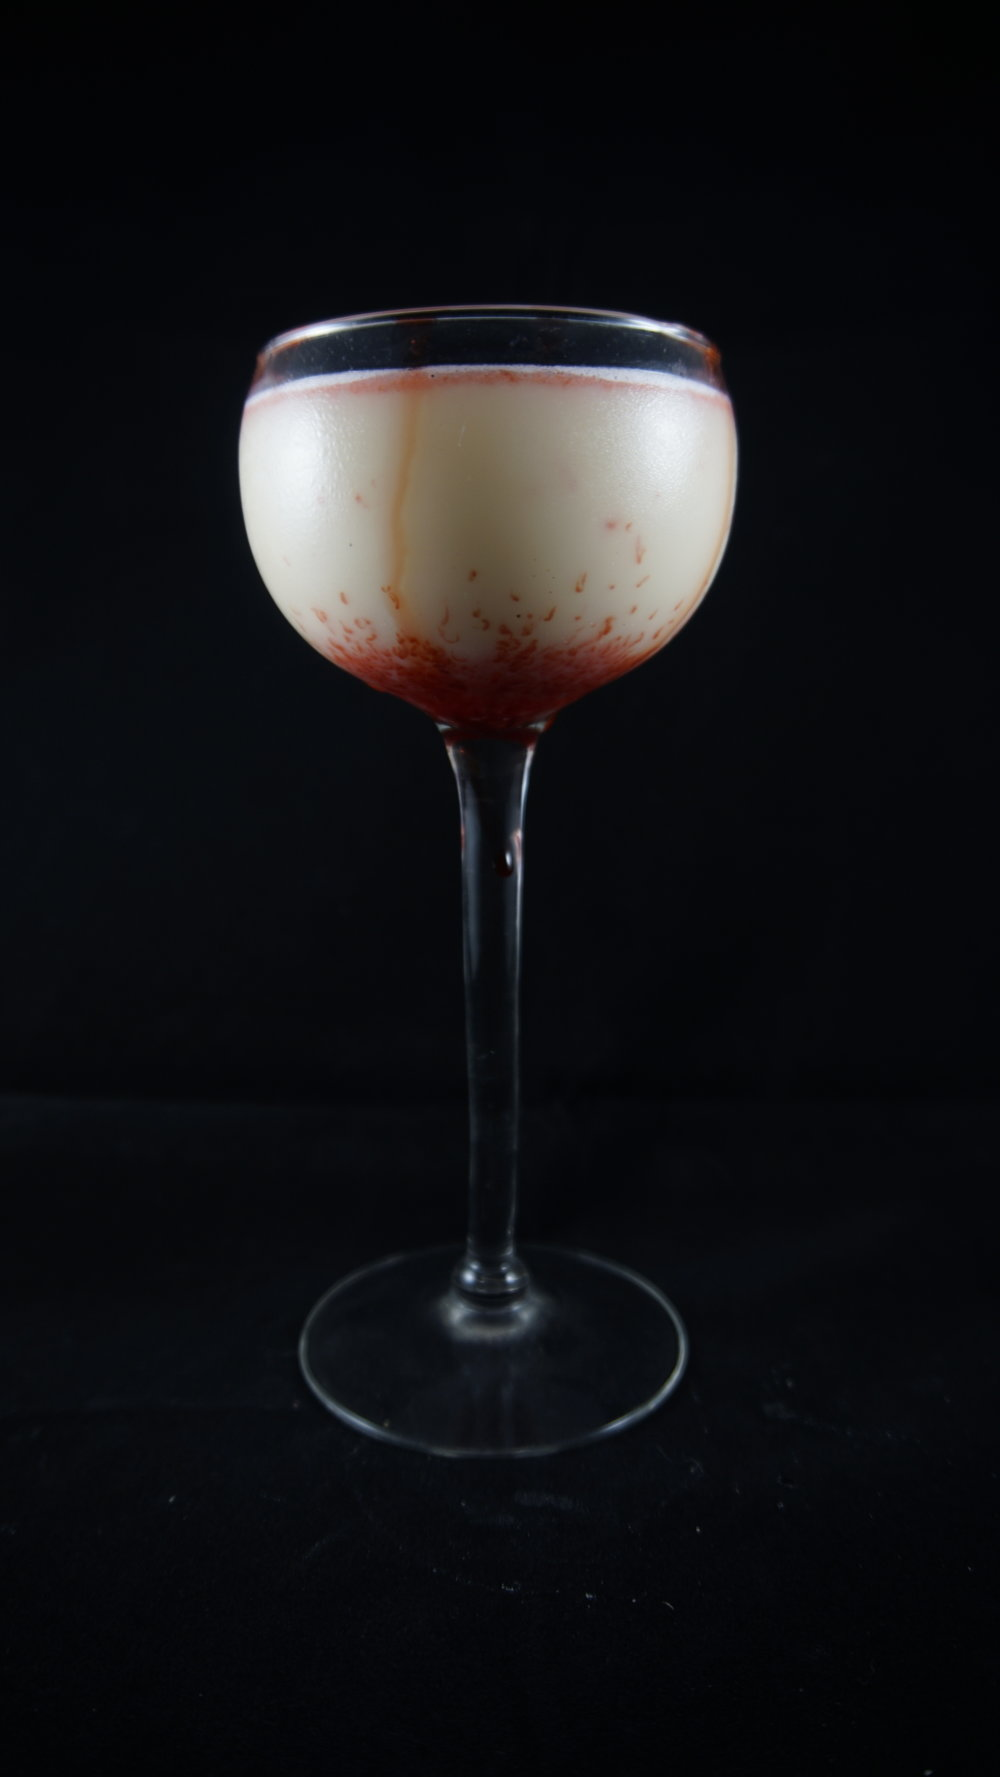 Leviticorpse - 2 oz Deaths Door vodka2 oz white amaretto1 oz creme de menthe1oz branca mentadash of cranberry bittersCombine the vodka, creme de menthe, and branca menta in shaker with ice and shake well. Pour in glass and top with a few shakes of cranberry bitters.